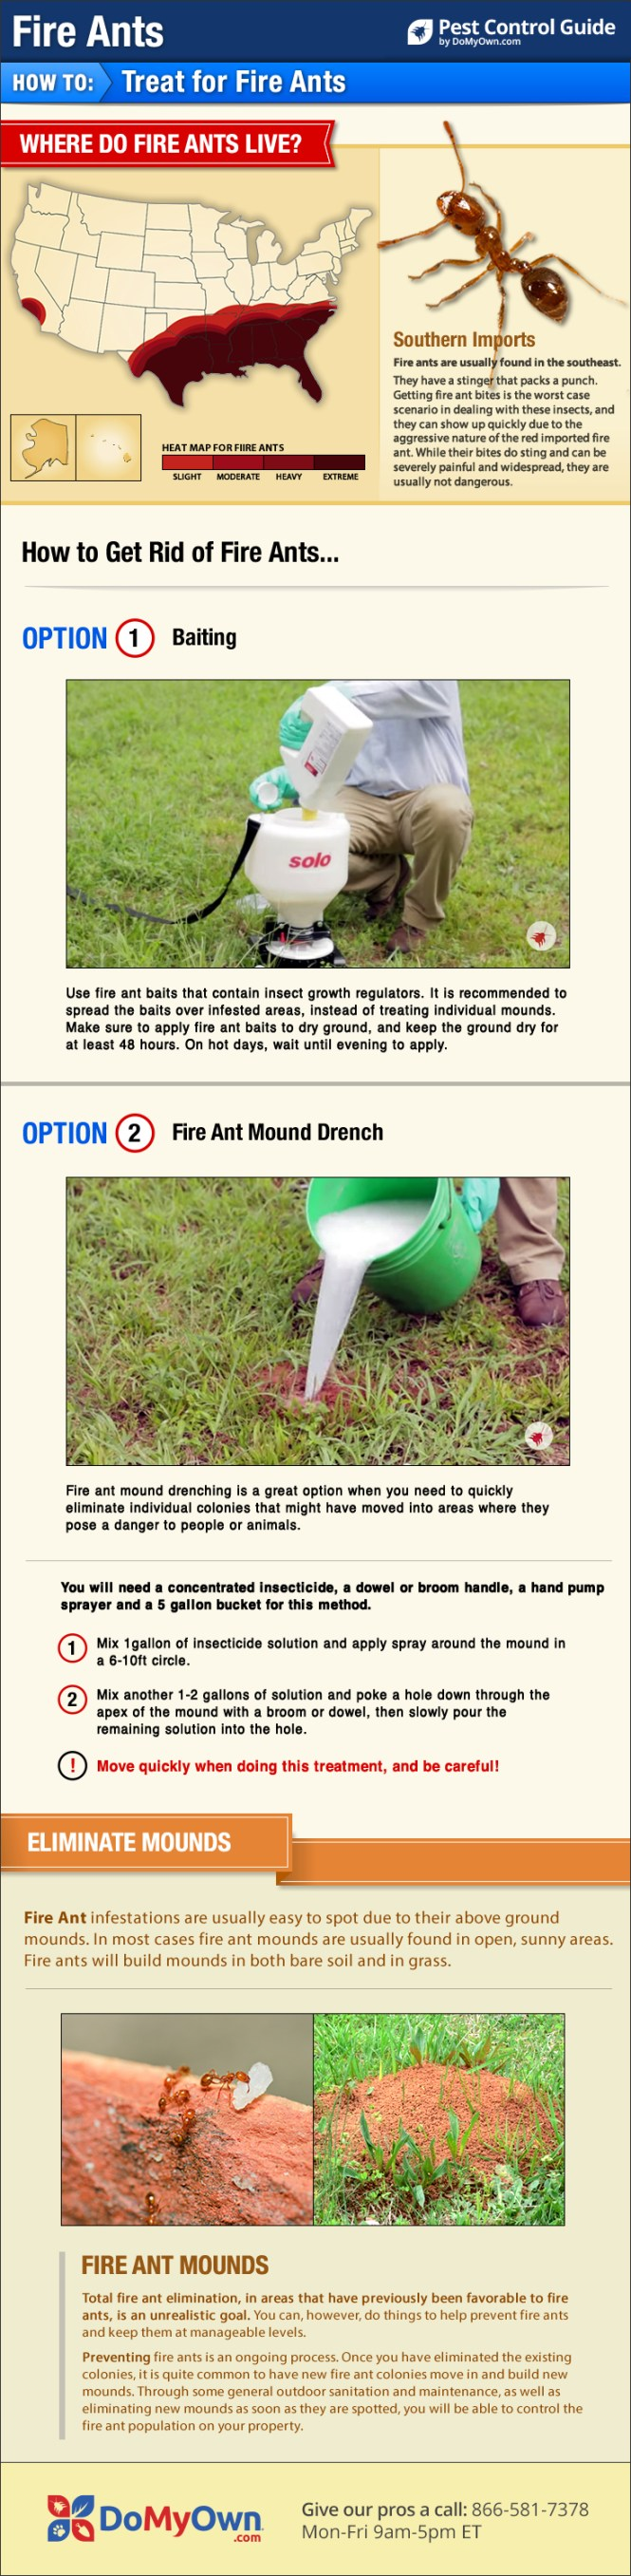 Get Rid Of Fire Ants Using Their Own Natural Instincts Against Them